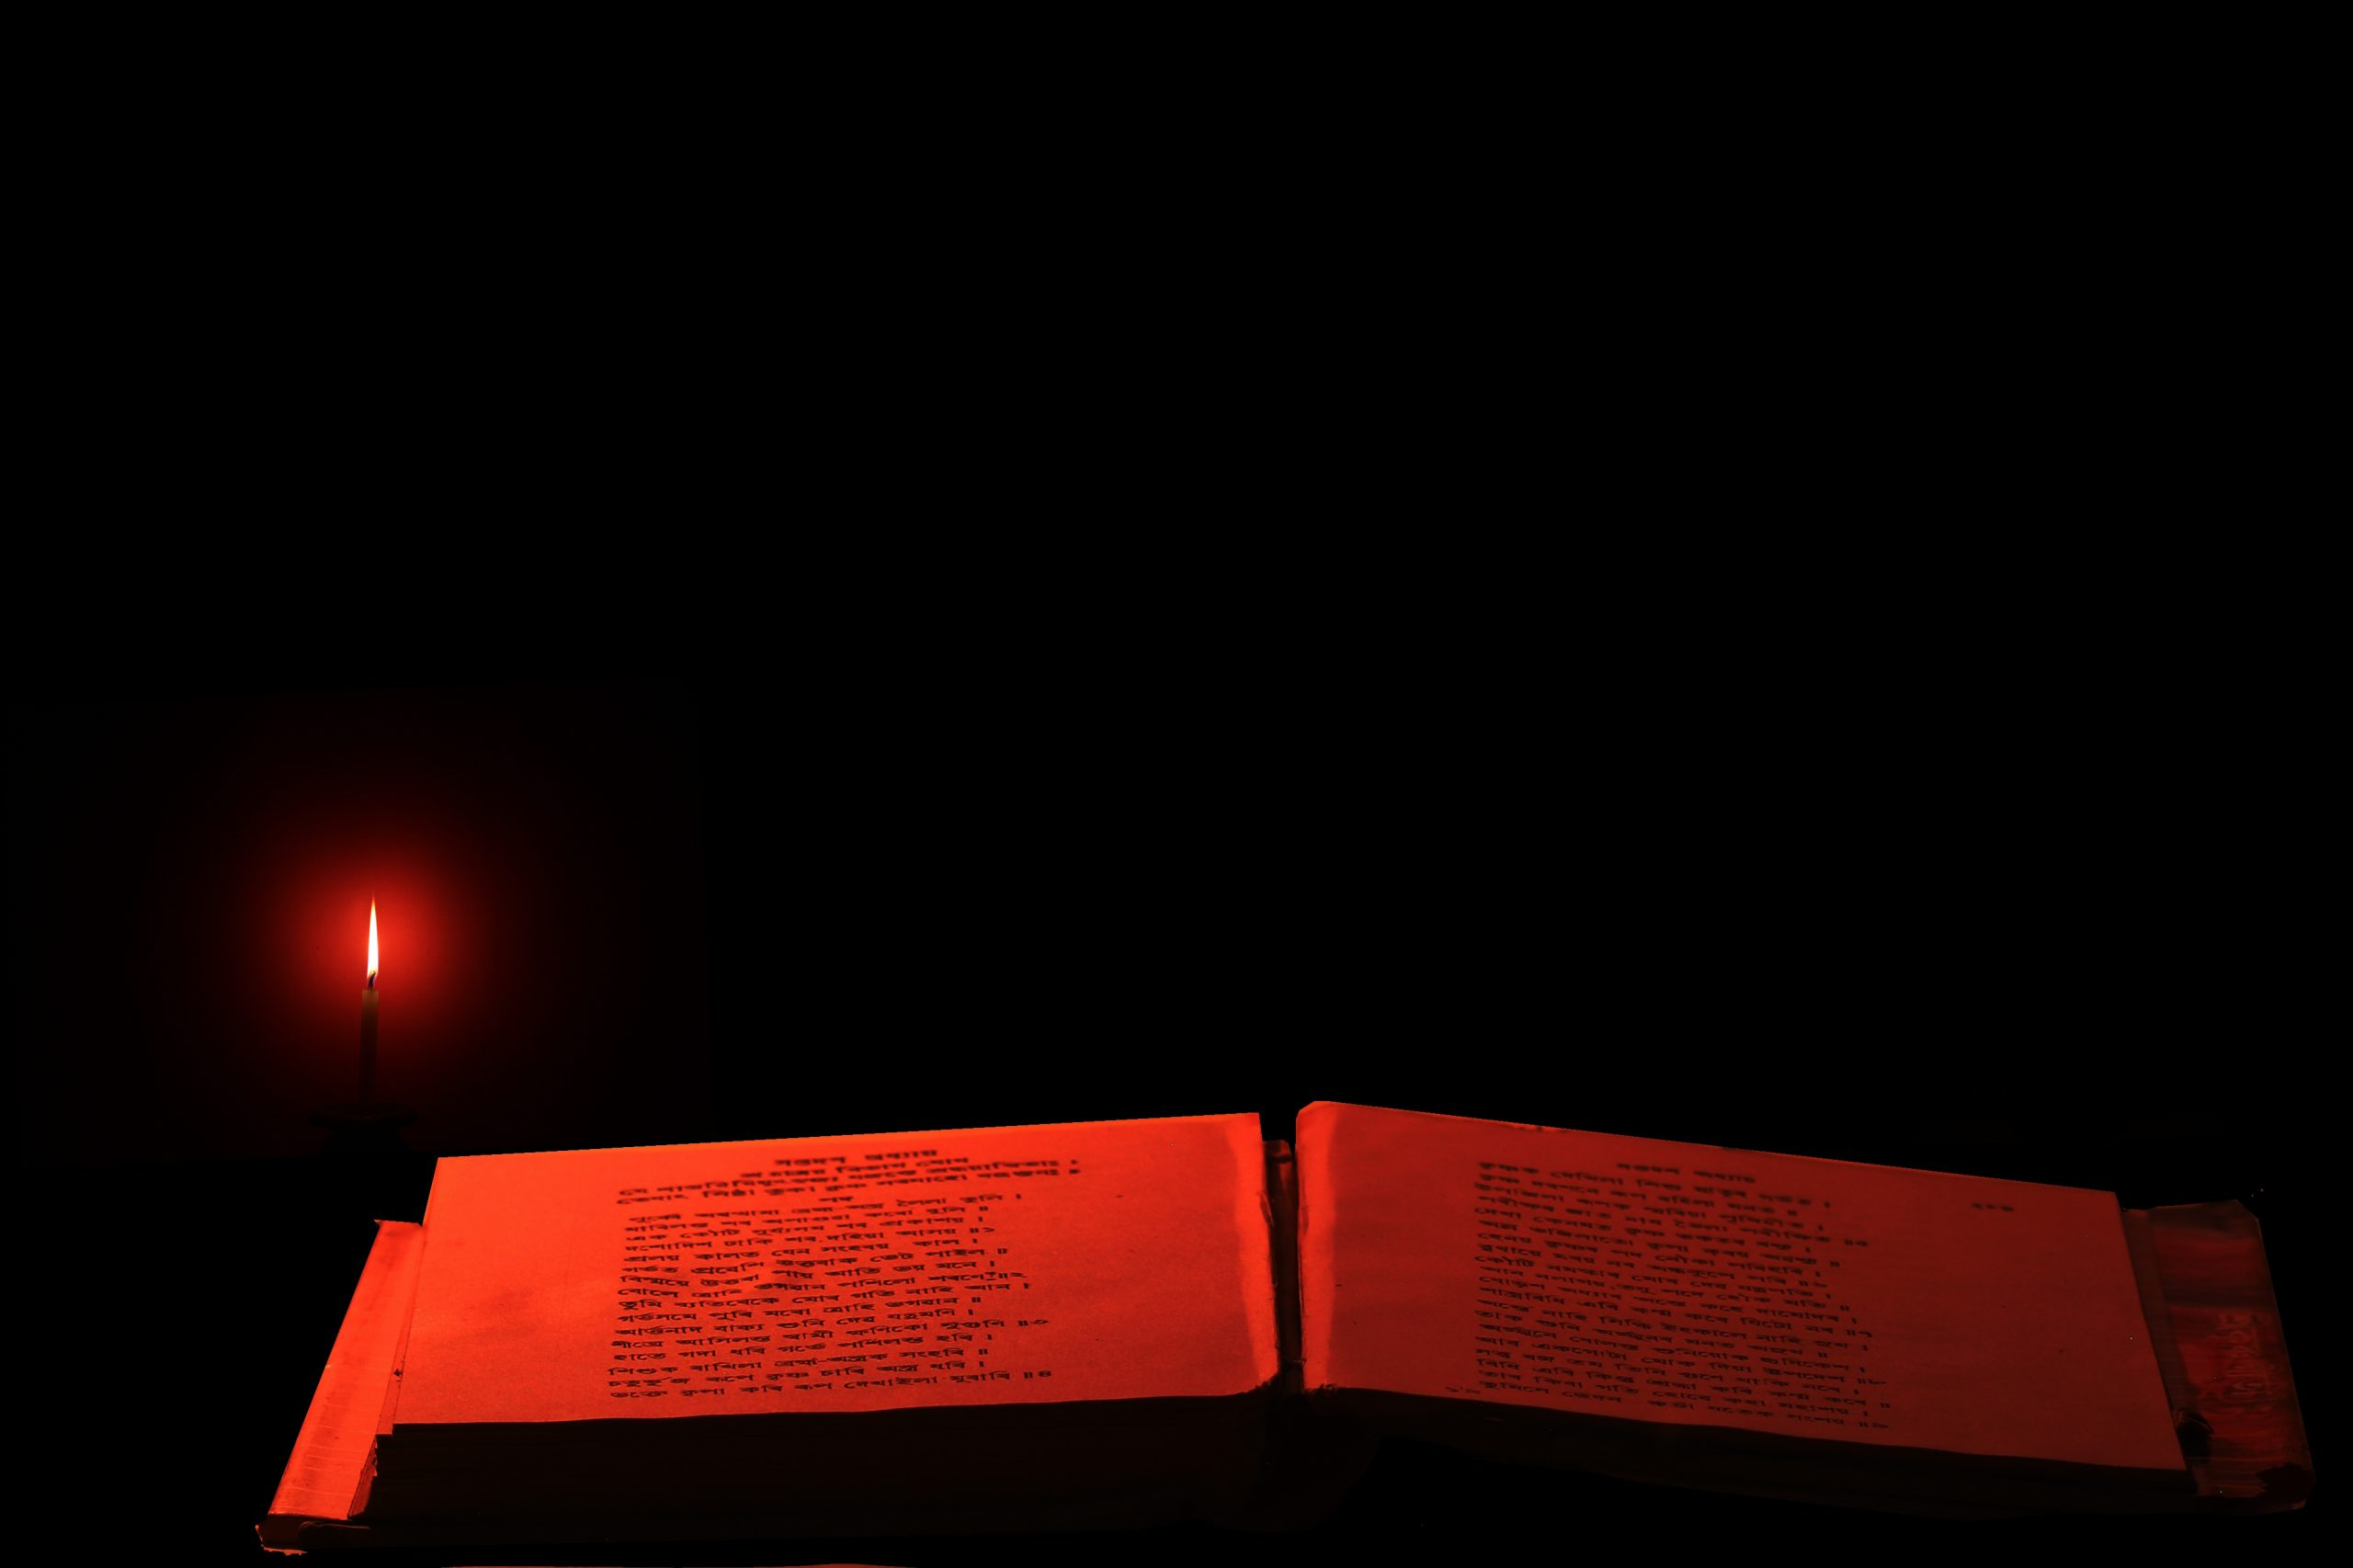 Reading a holy book in candle light